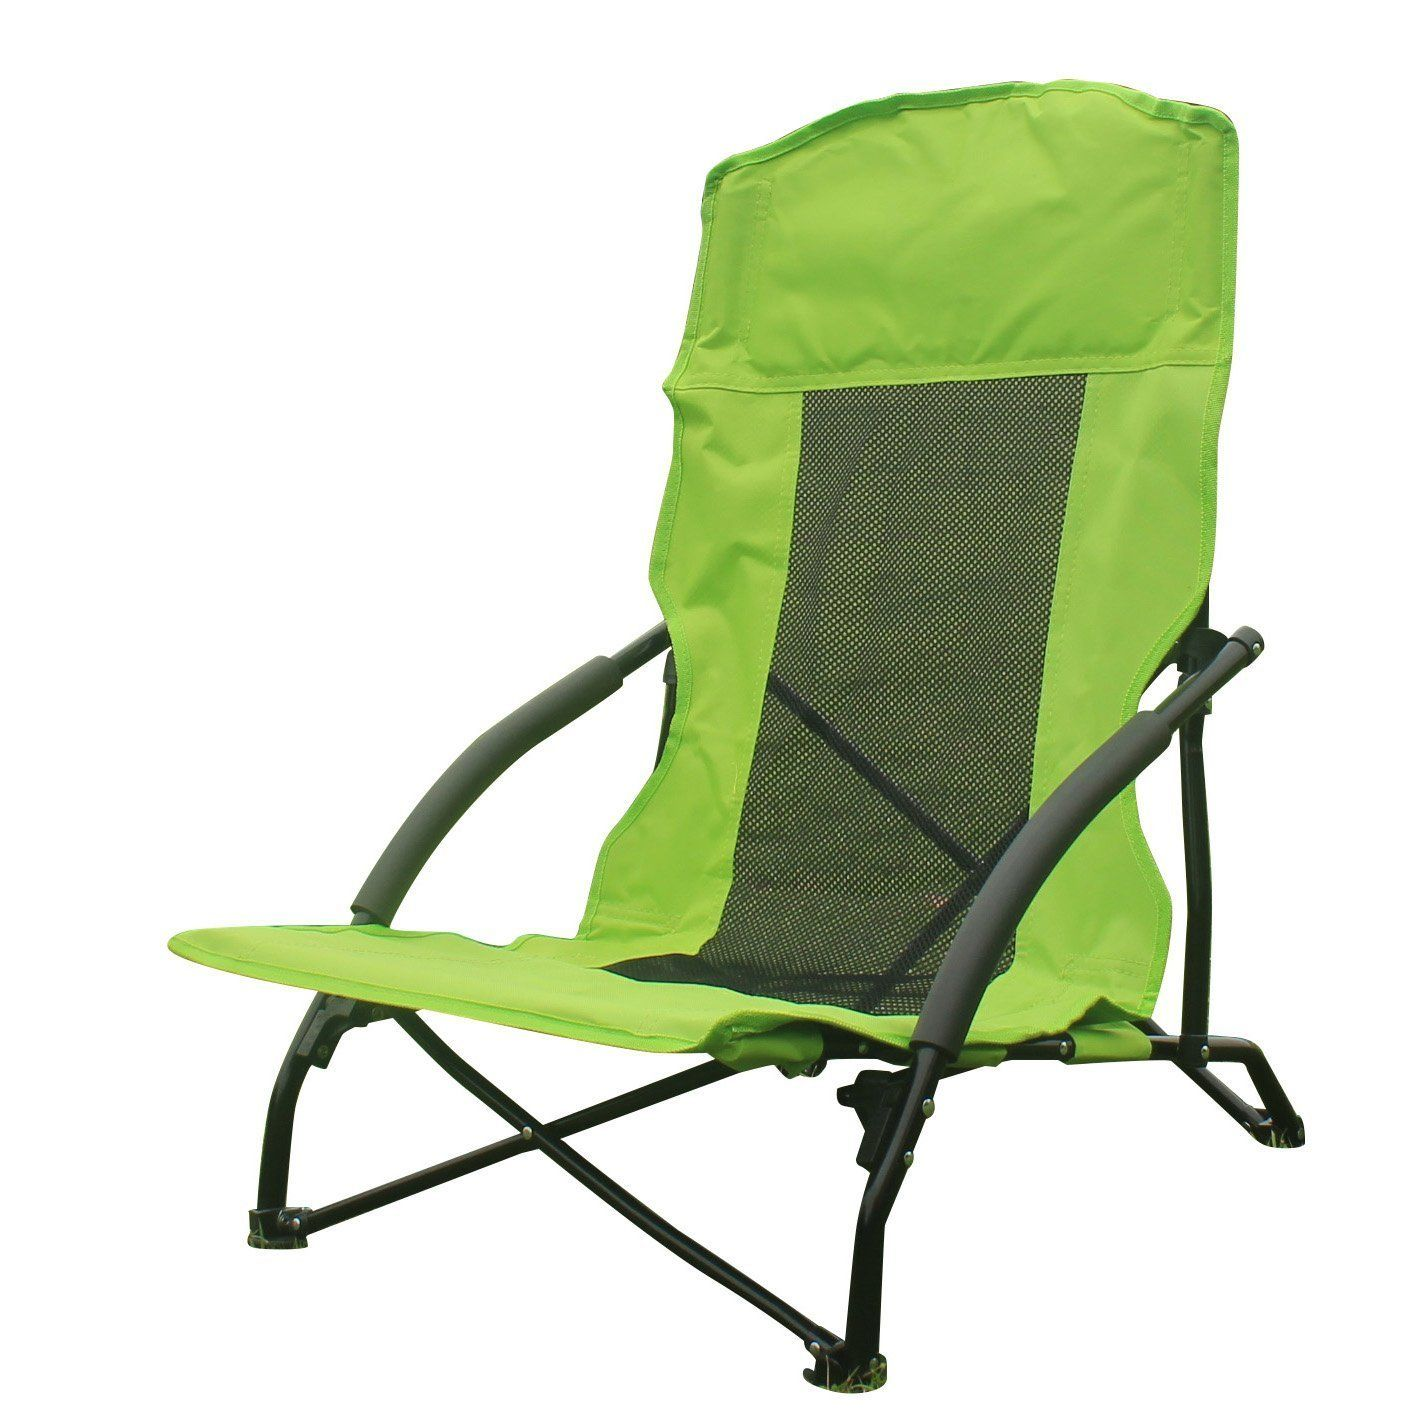 Funs Portable Heavy Duty Folding Chair, Compact In a Bag